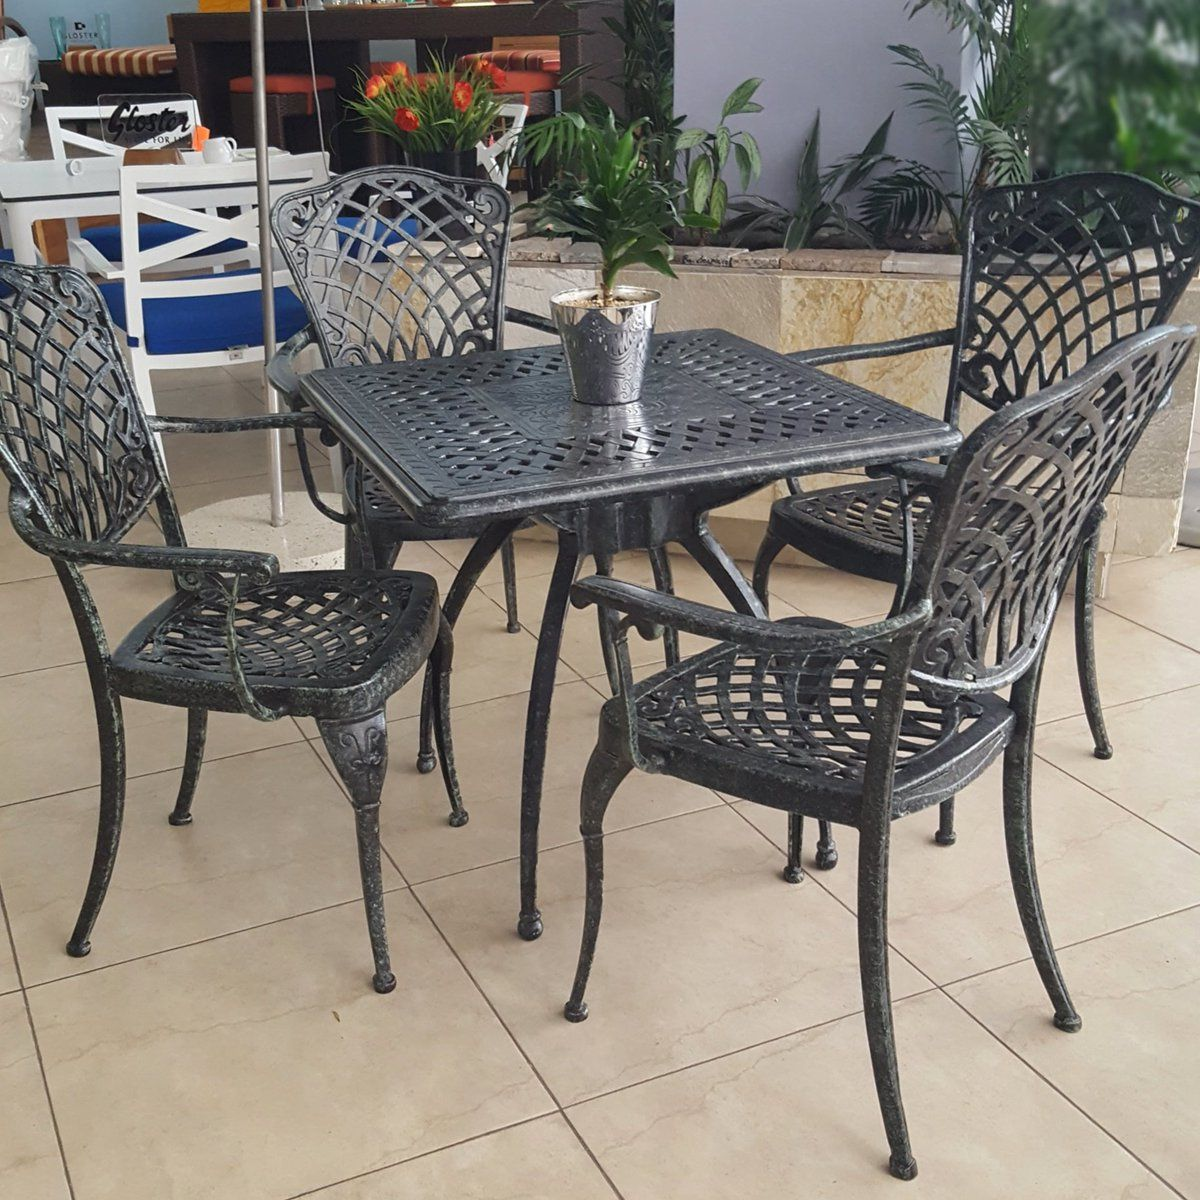 Merveilleux Landgrave Outdoor Furniture   Best Paint To Paint Furniture Check More At  Http://